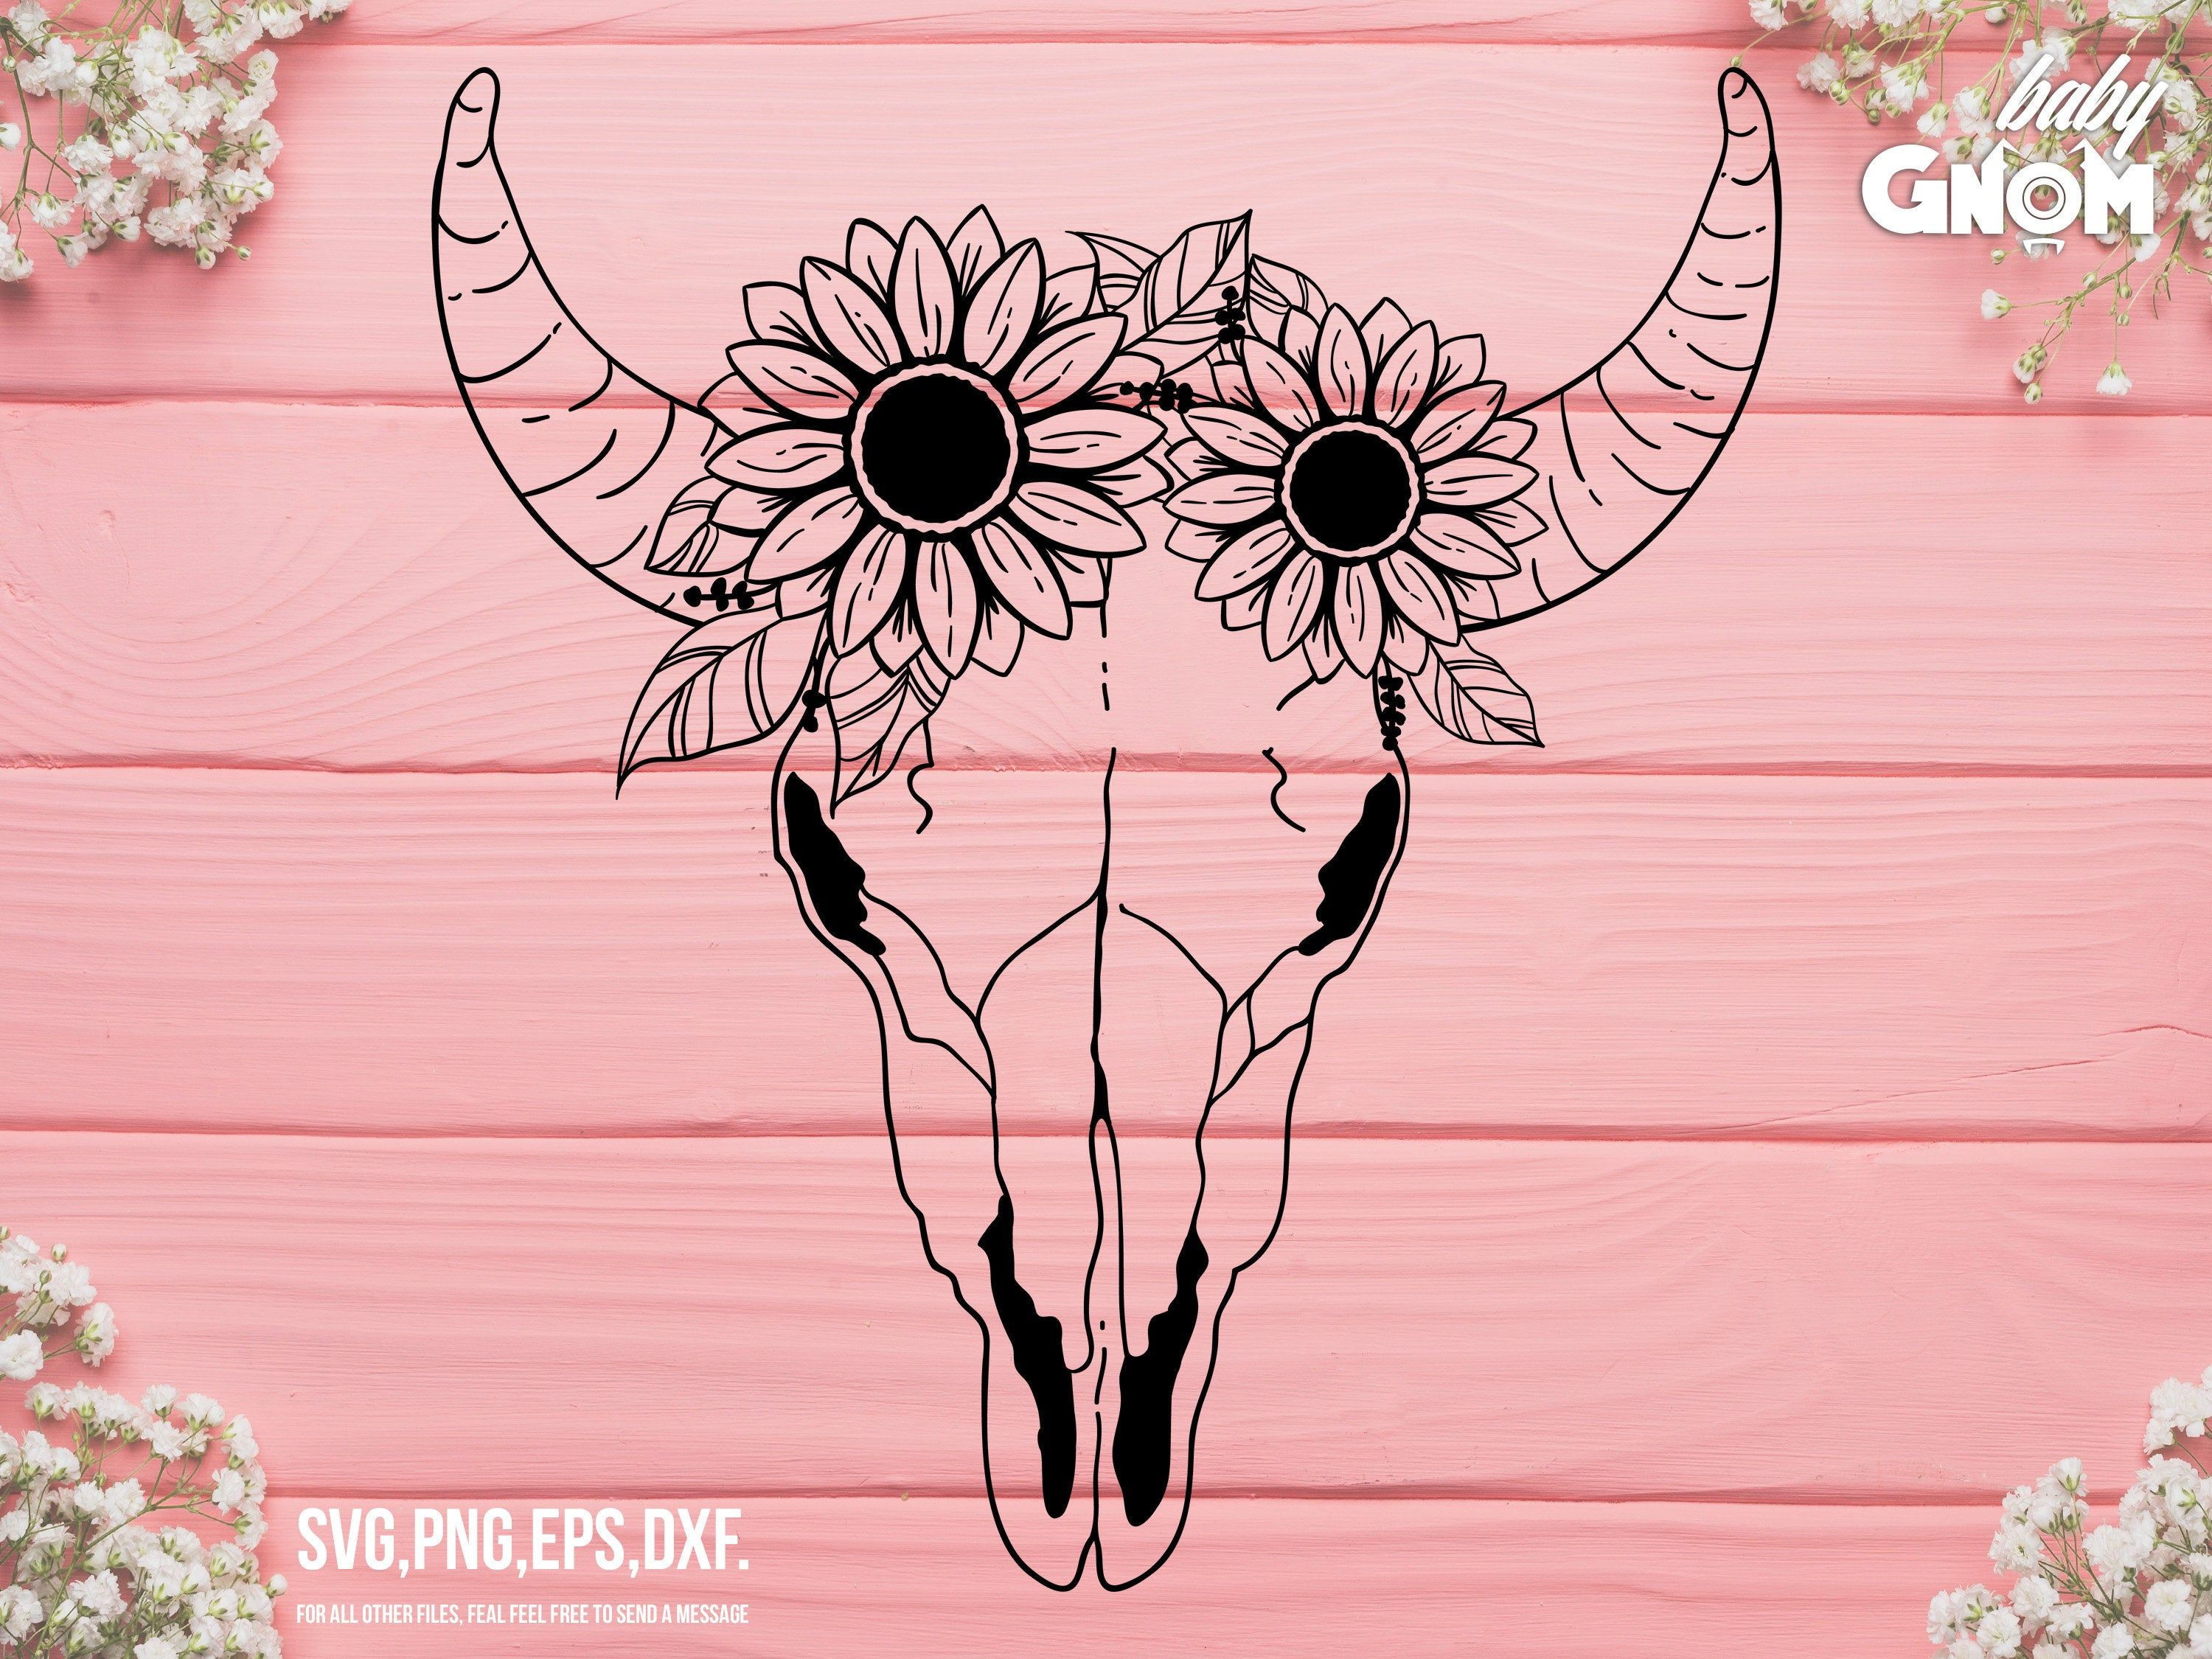 Cow Skull with Flowers SVG Cow Skull Sunflowers svg file